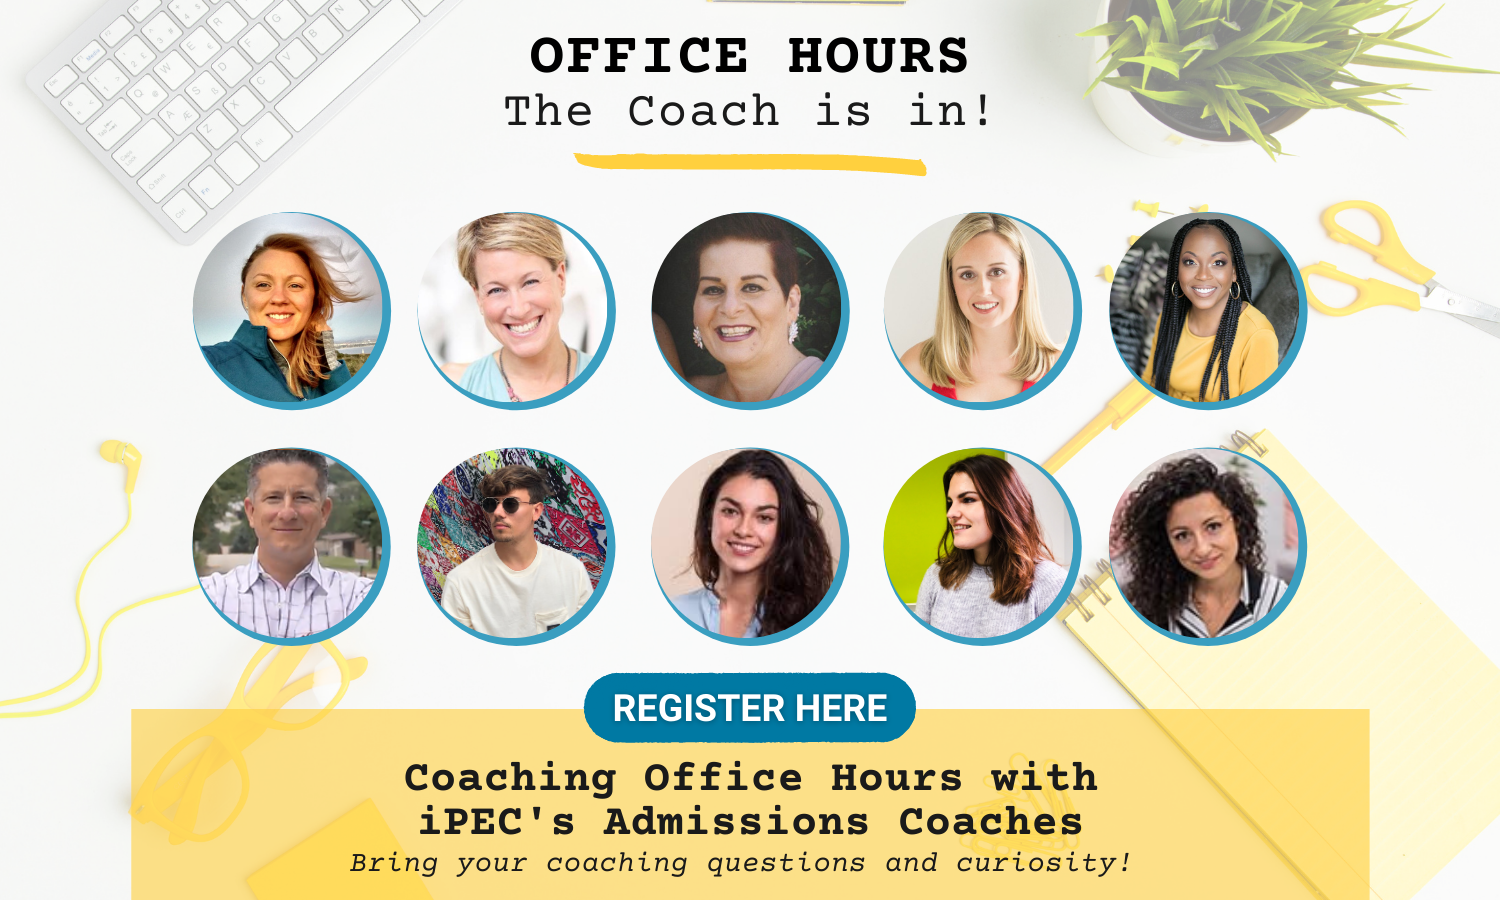 Coaching Office Hours with iPEC Admissions Coaches